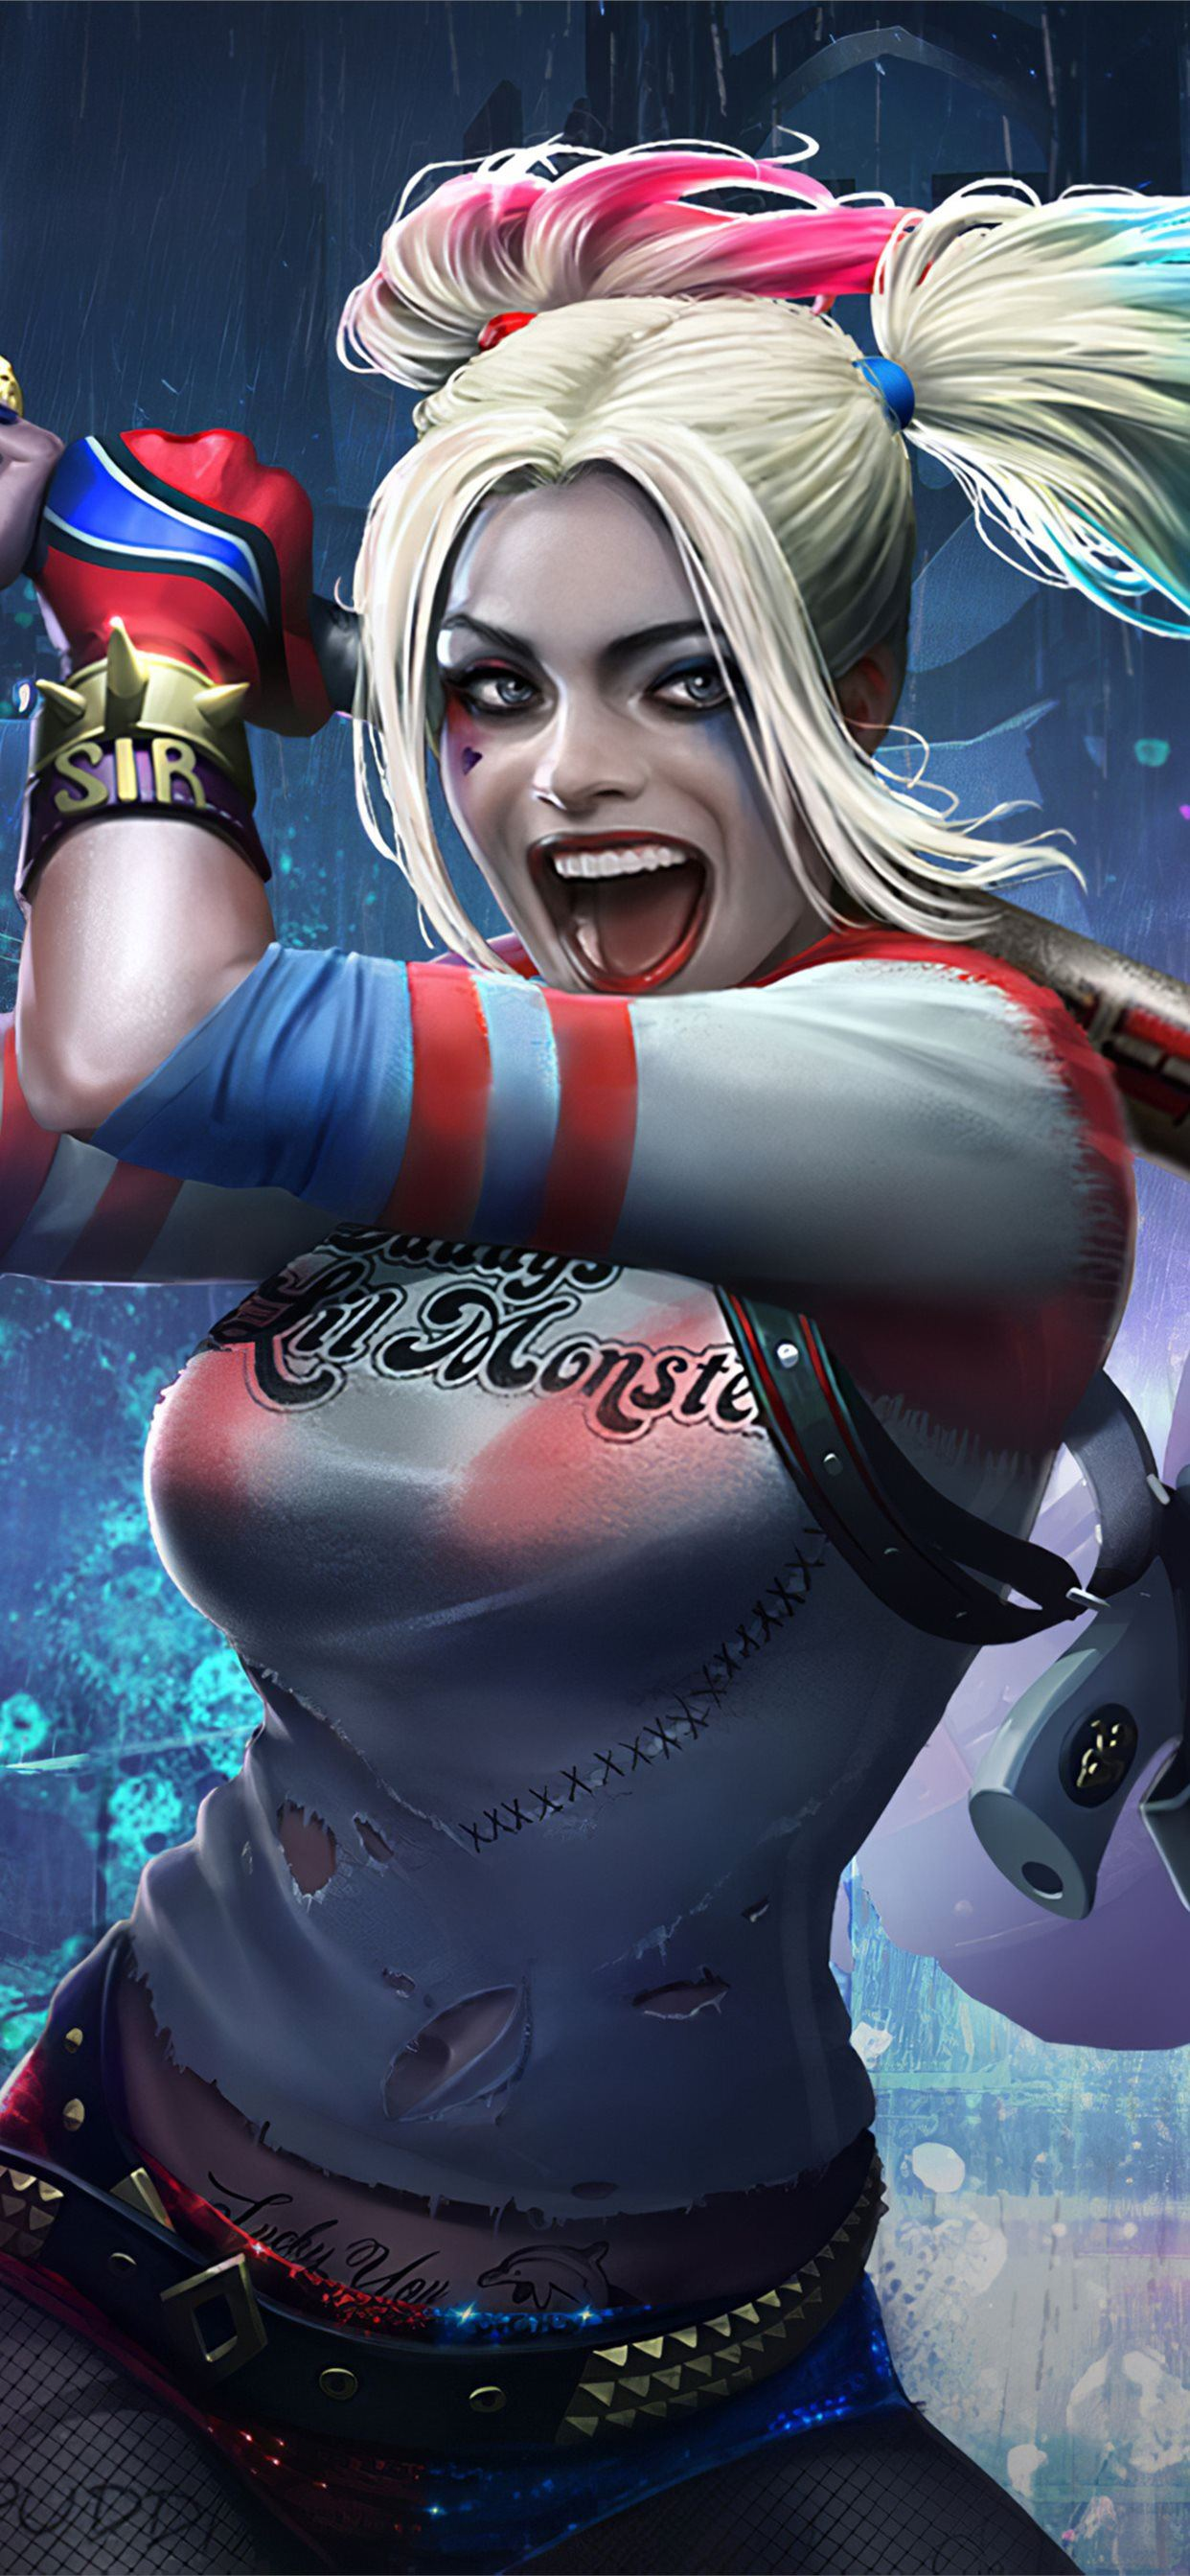 Harley Quinn And Deadshot Injustice 2 Mobile Iphone Se Wallpapers